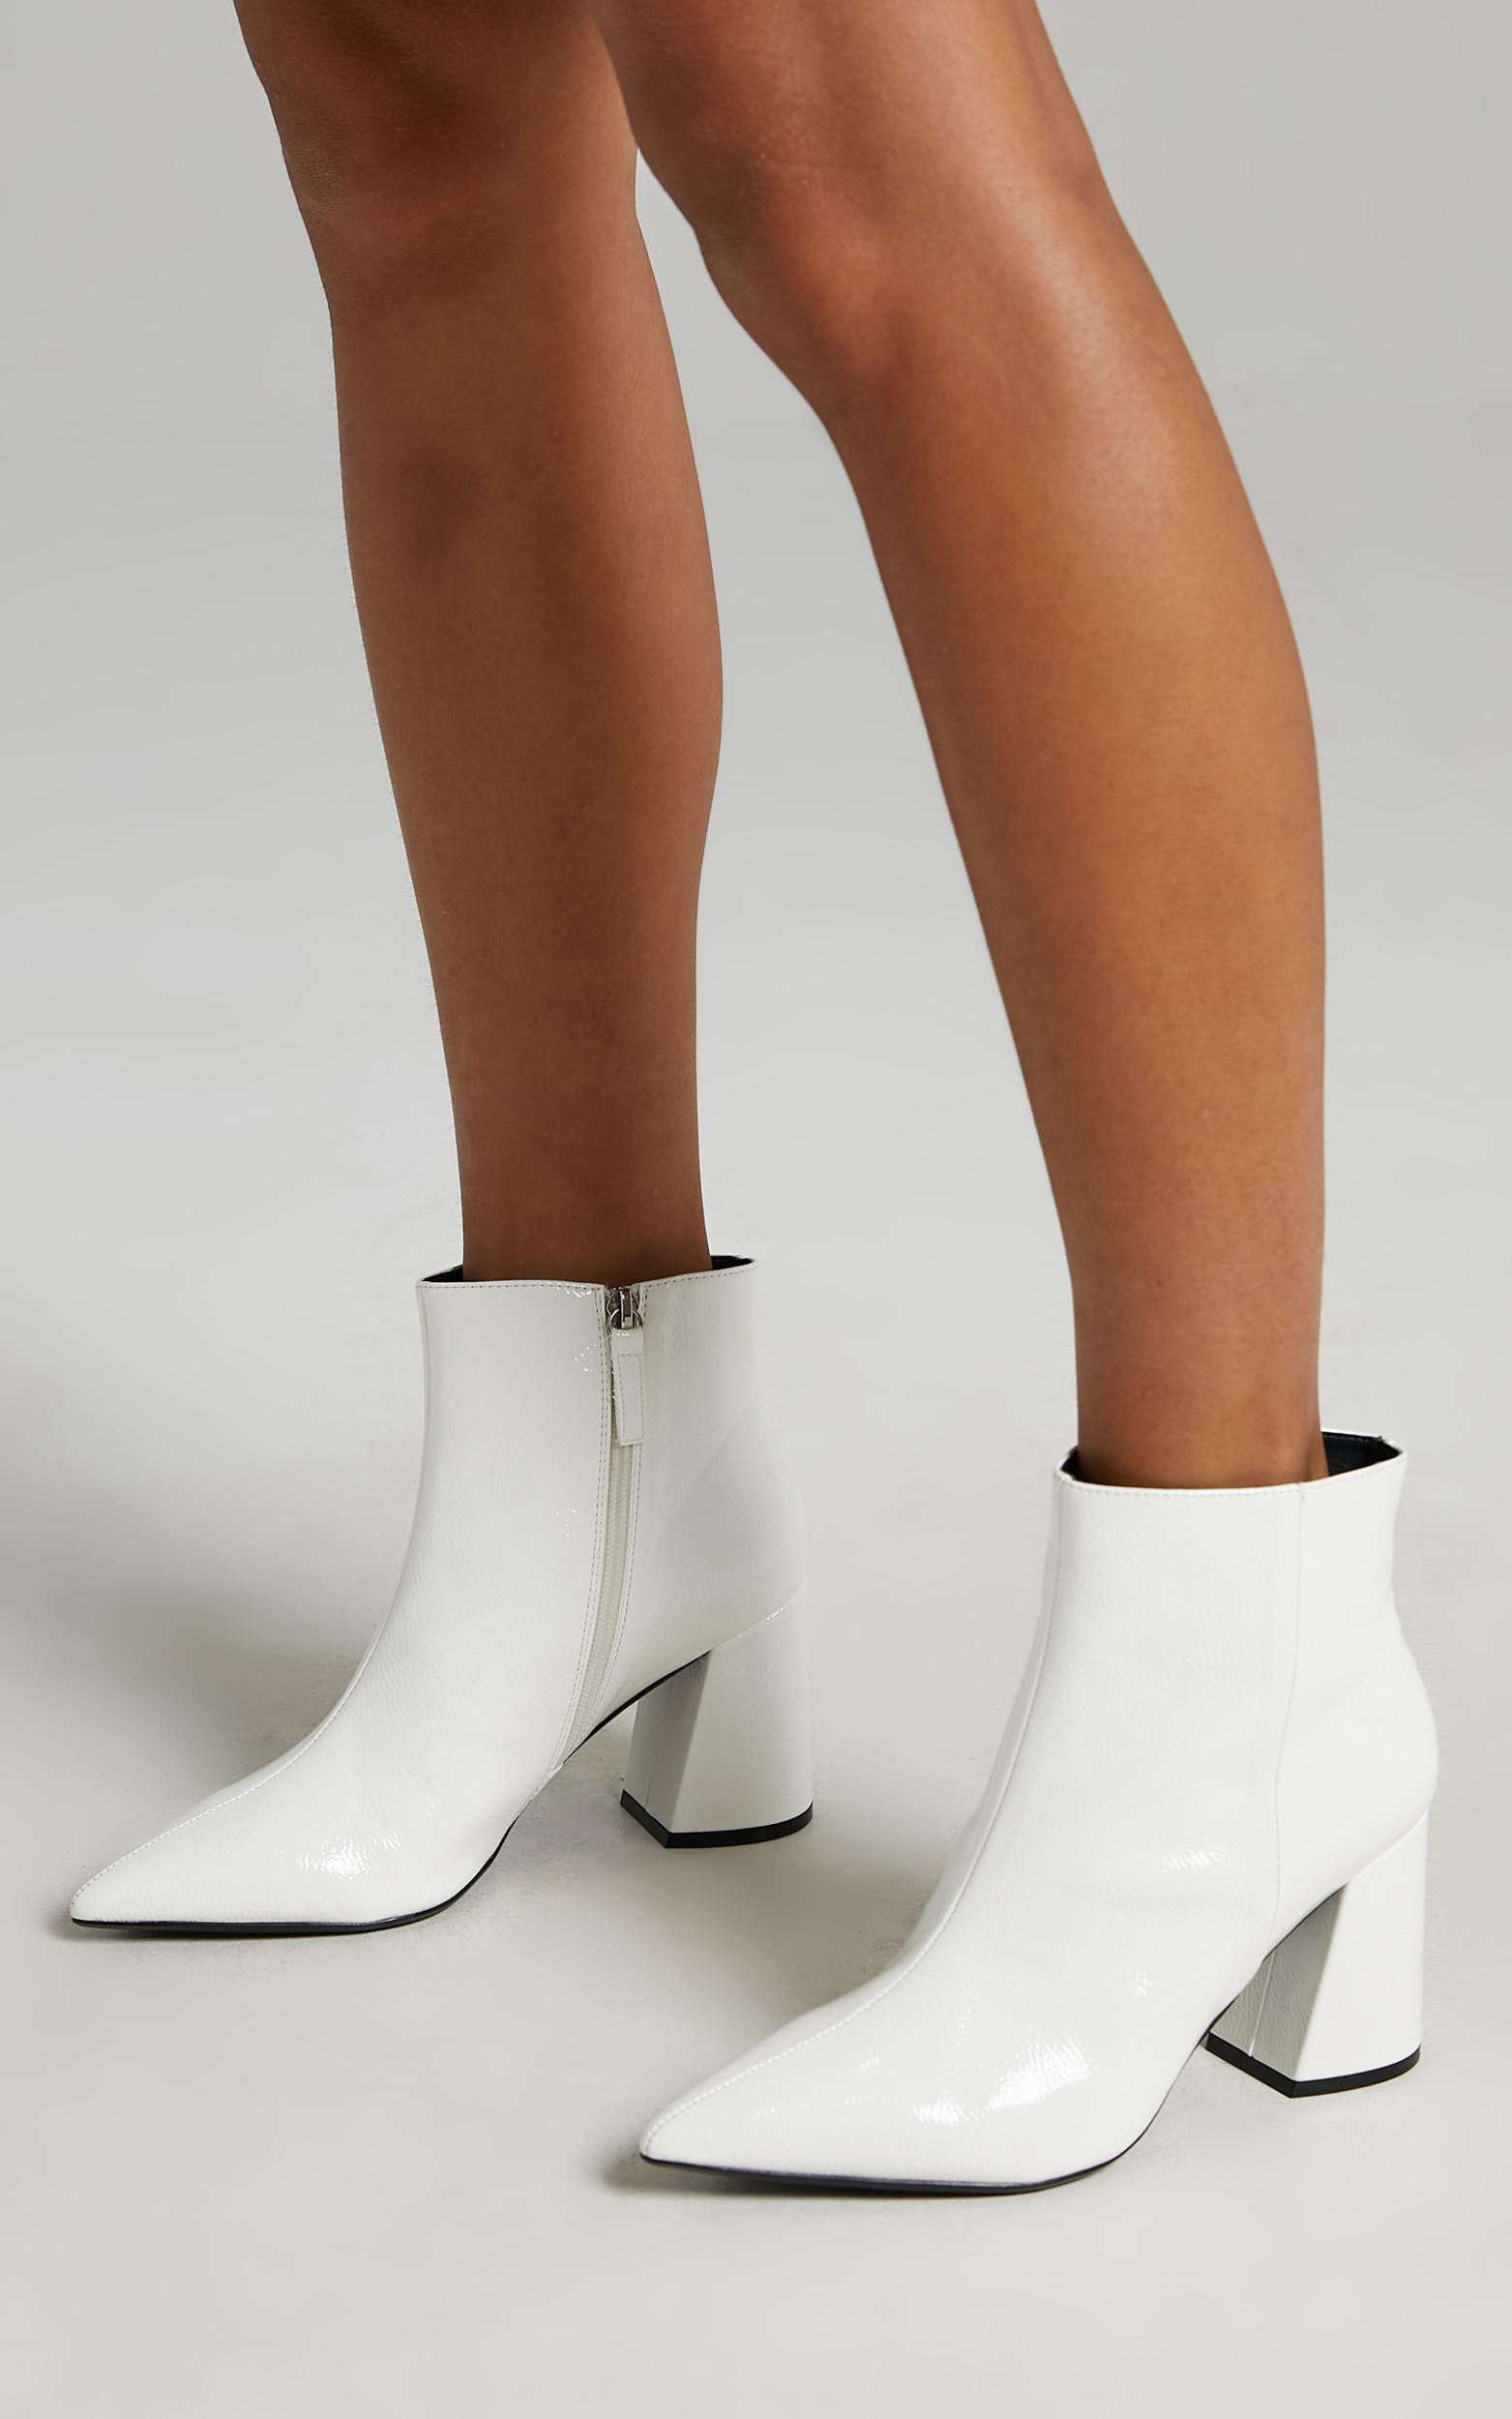 Therapy - Cleo Boots in White Crinkle Patent - 5, WHT3, hi-res image number null